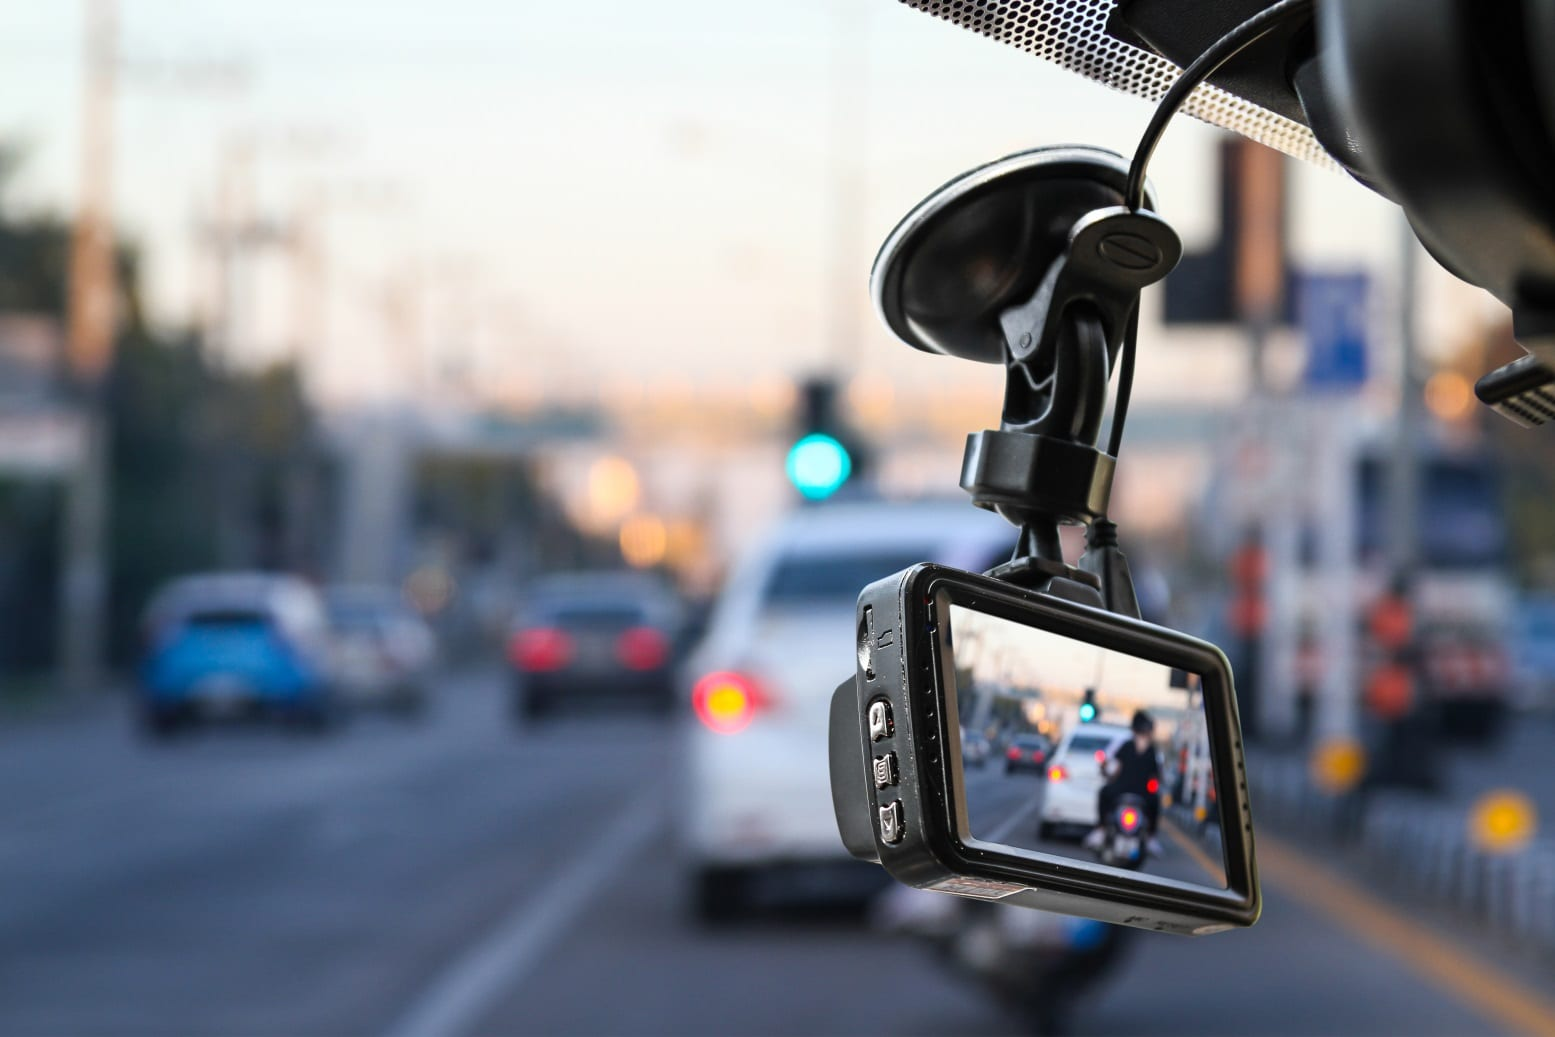 What to look for when buying a dashcam